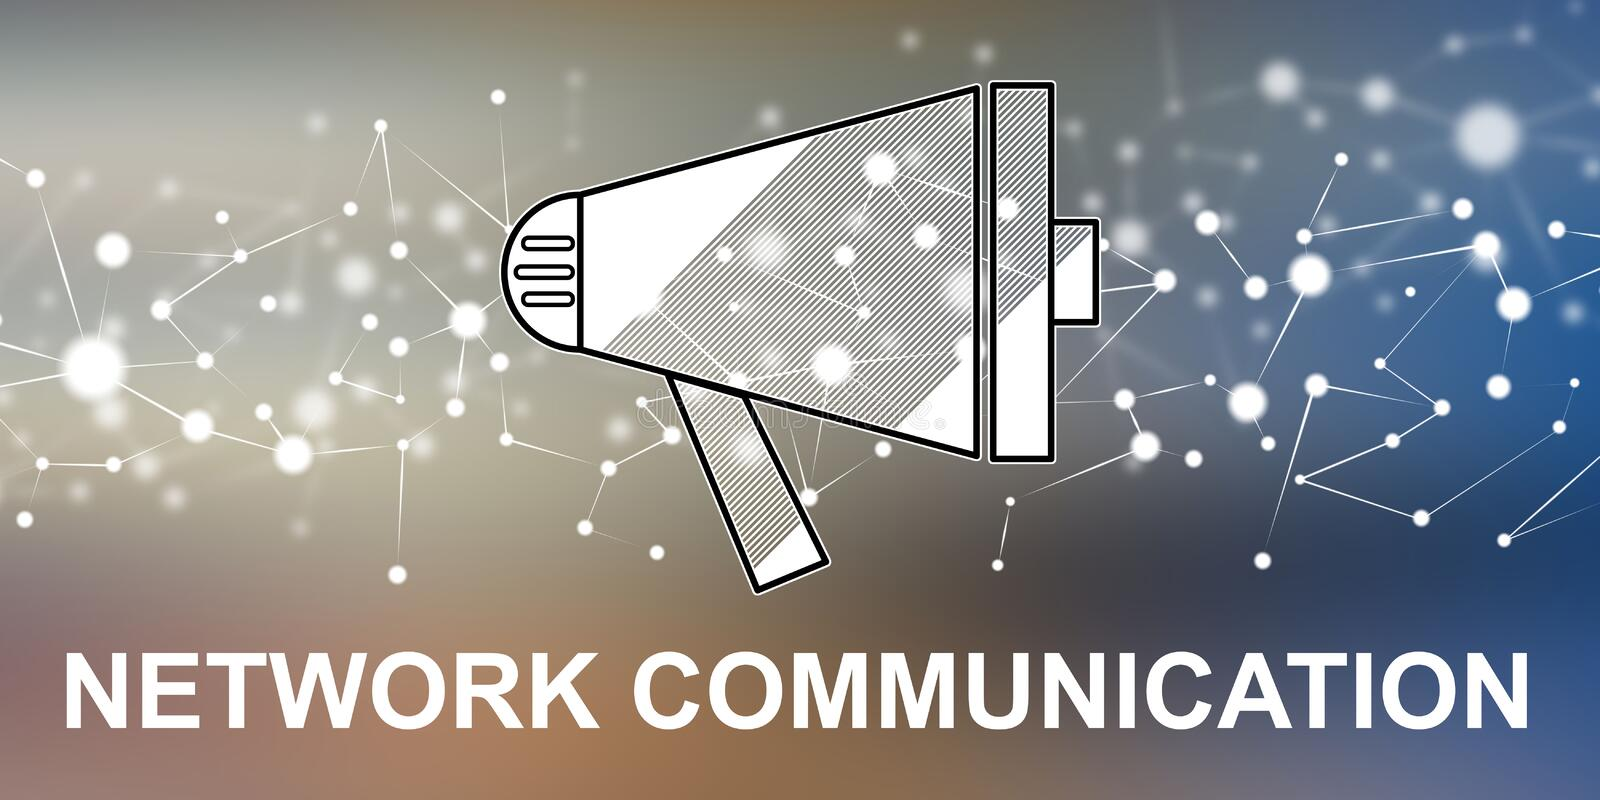 Concept of network communication vector illustration